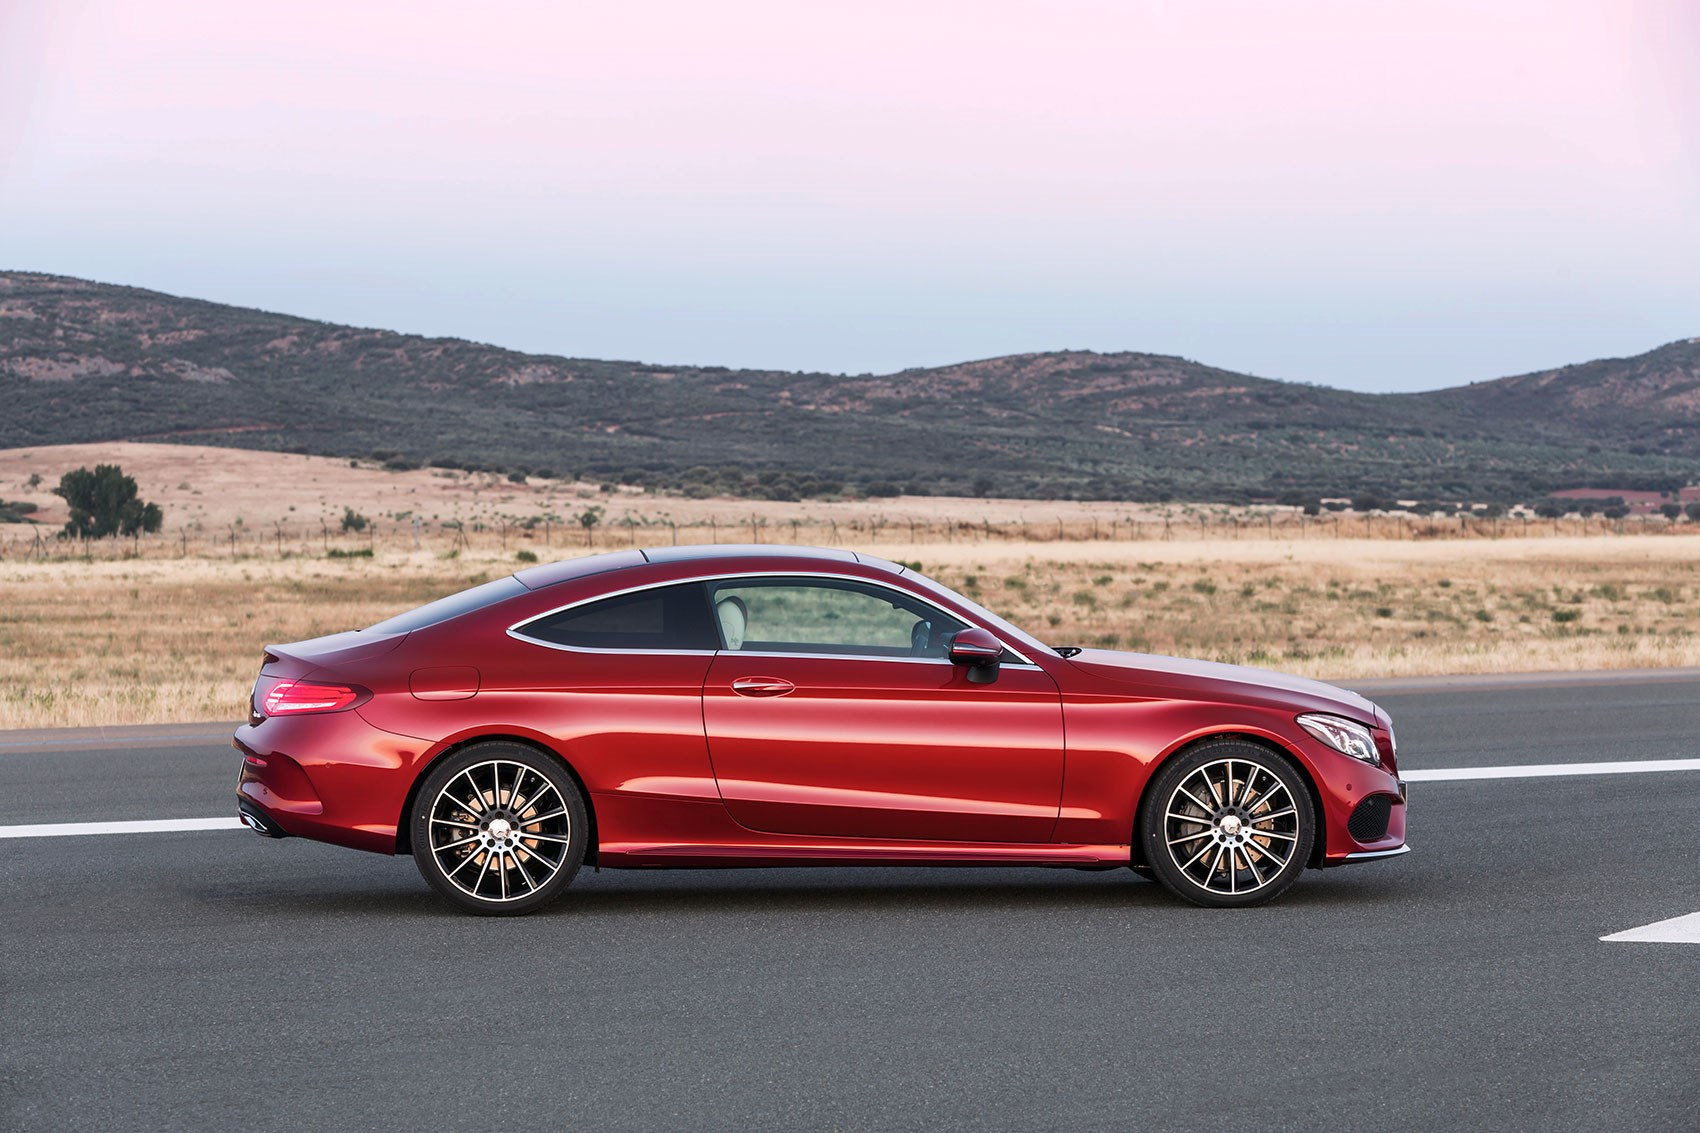 New 2016 mercedes c class coupe takes fashion lessons from the audi a5 by car magazine - Mercedes c class coupe used ...